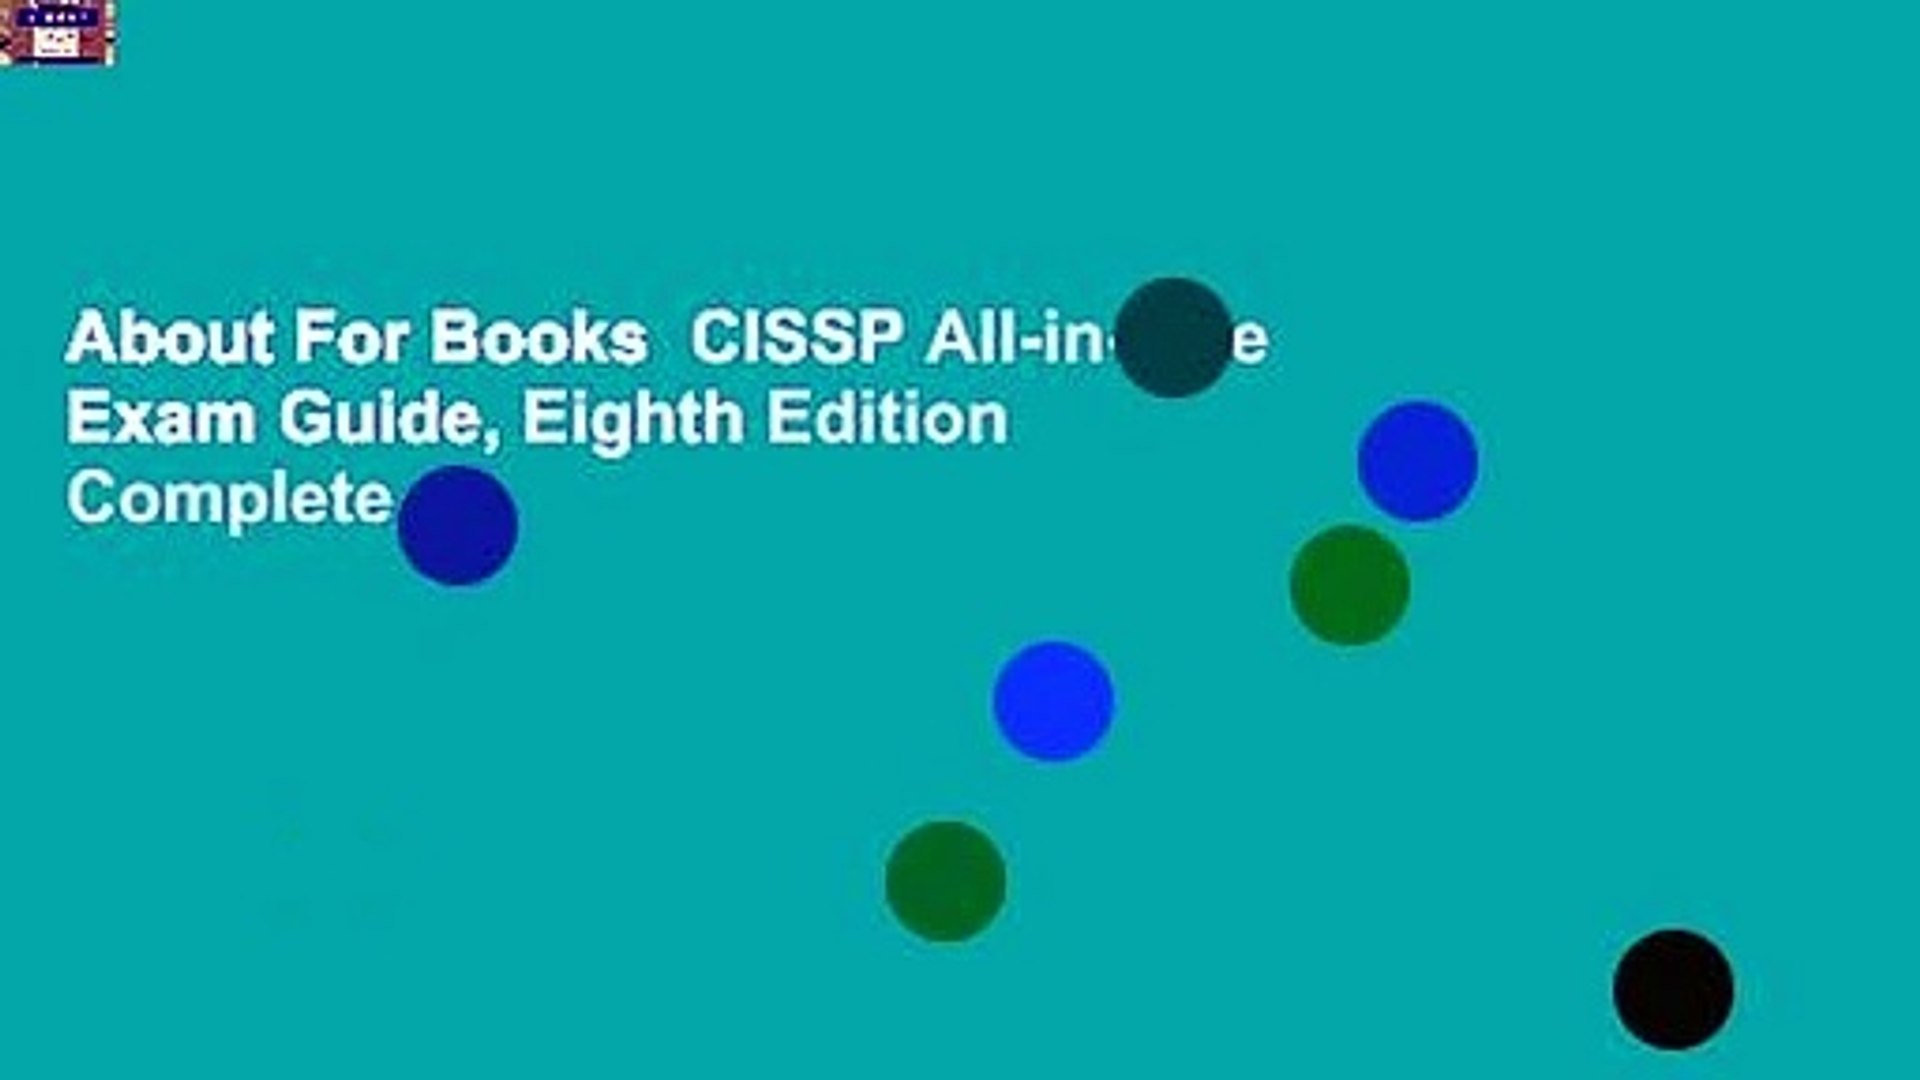 About For Books CISSP All-in-One Exam Guide, Eighth Edition Complete